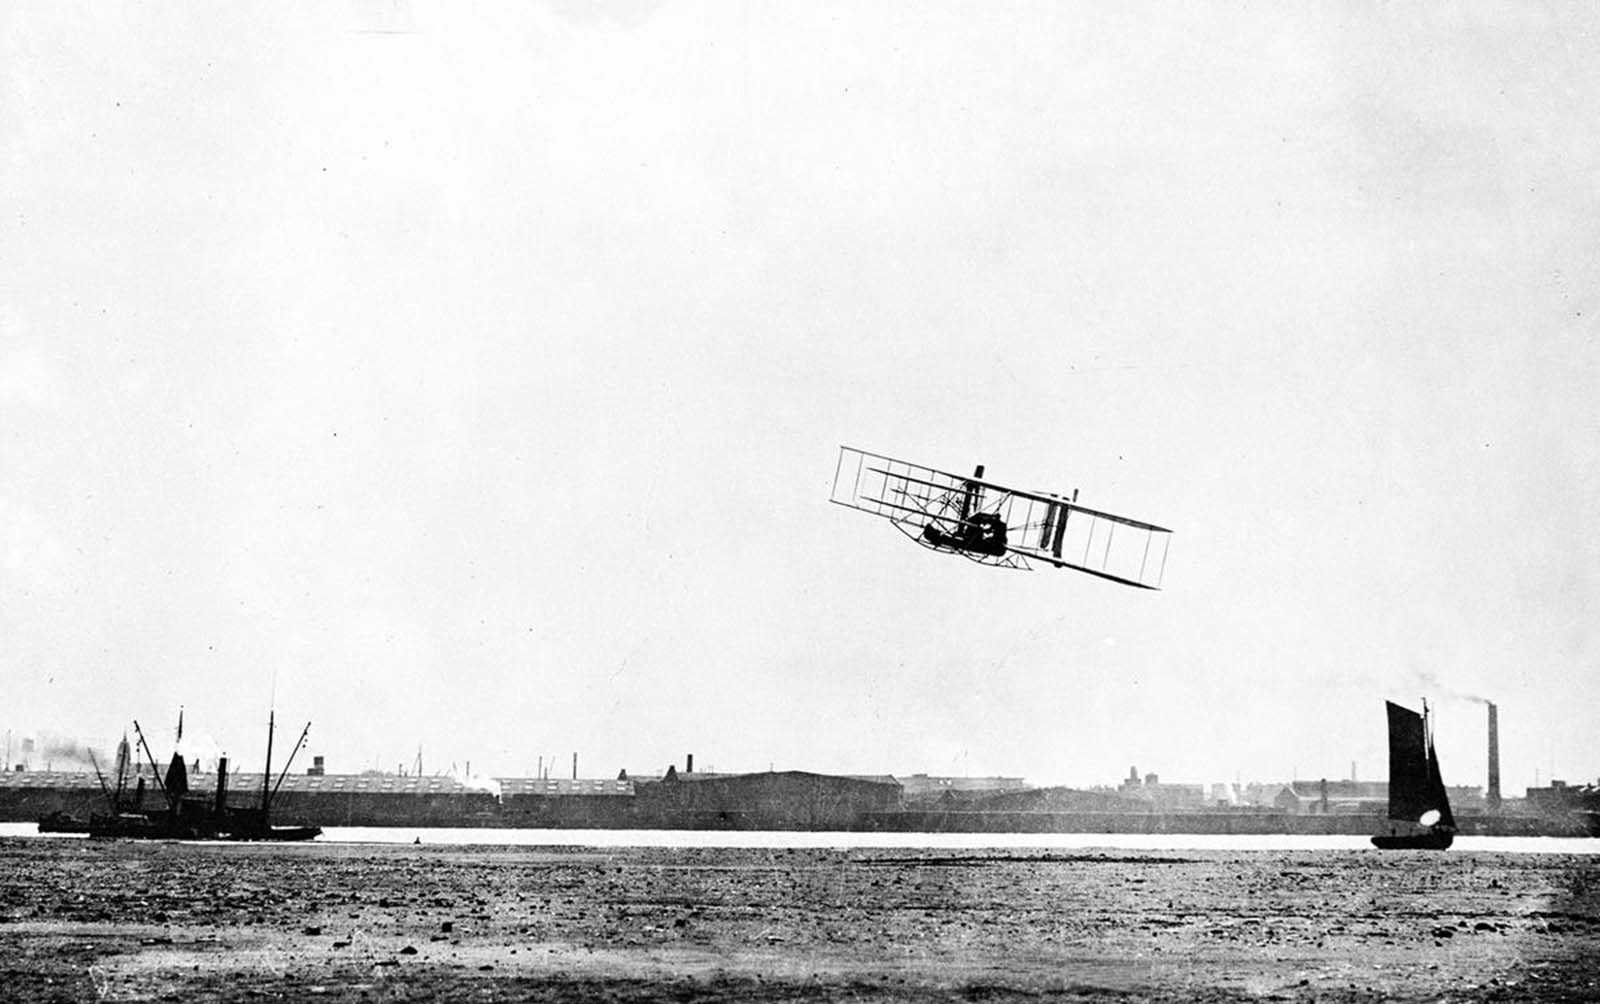 Wright Brothers Flight with 23 photos of the wright brothers' flights